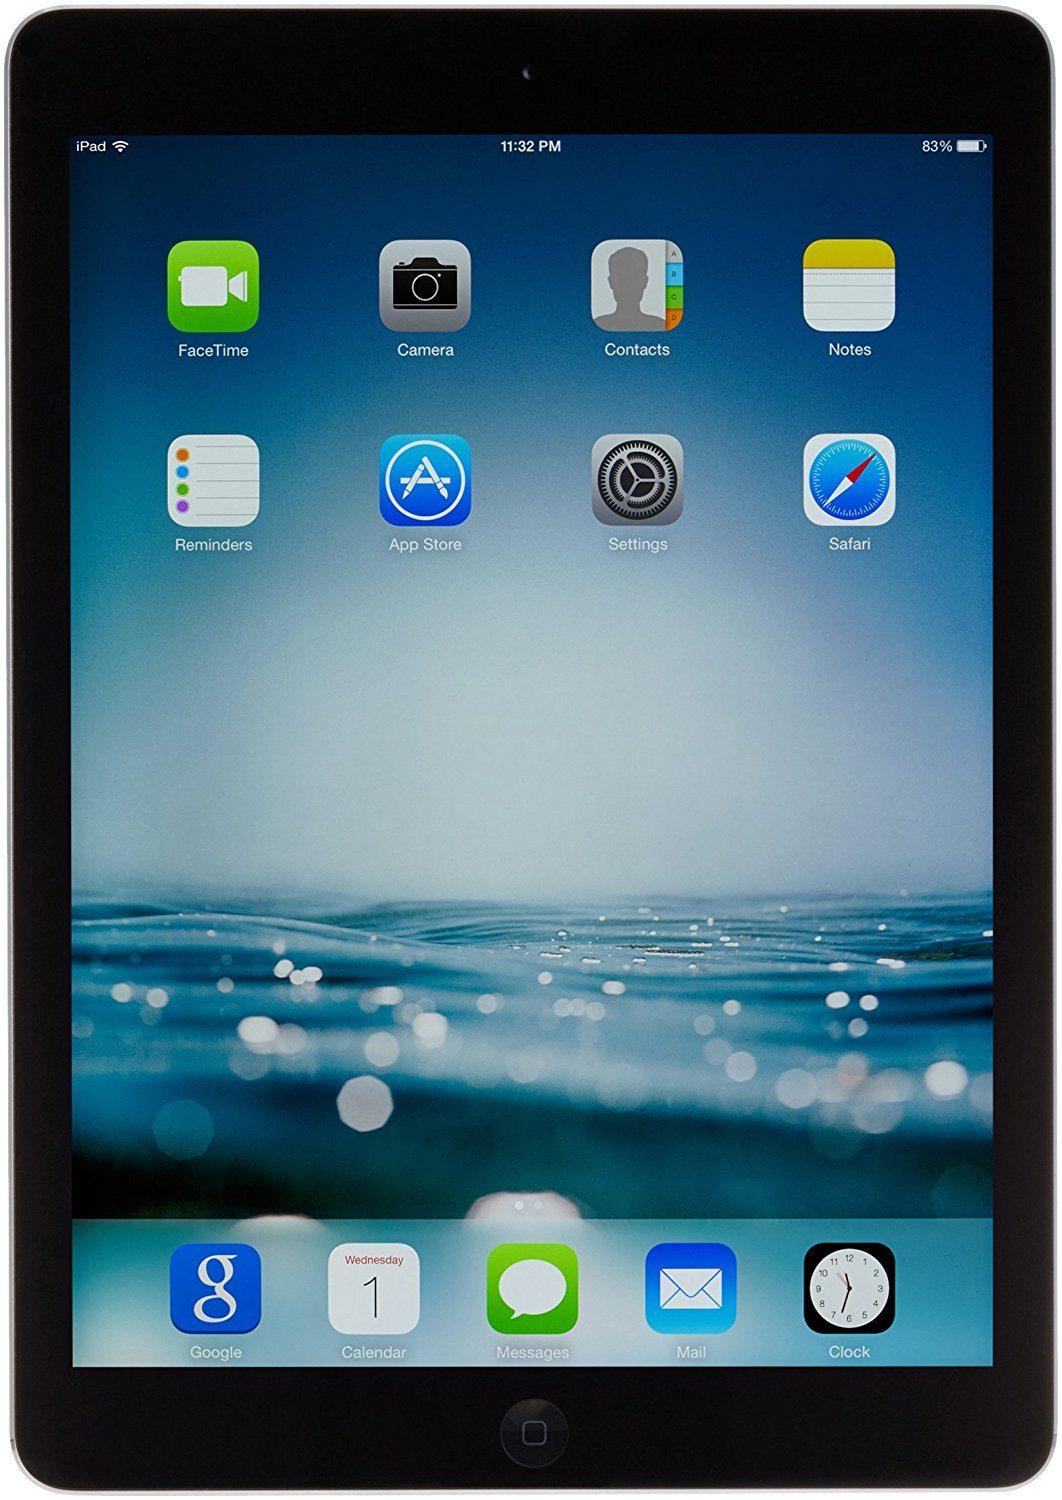 81eL7lO96NL. SL1500  - Apple iPad Air MD785LL/B (16GB, Wi-FI, Black with Space Gray)